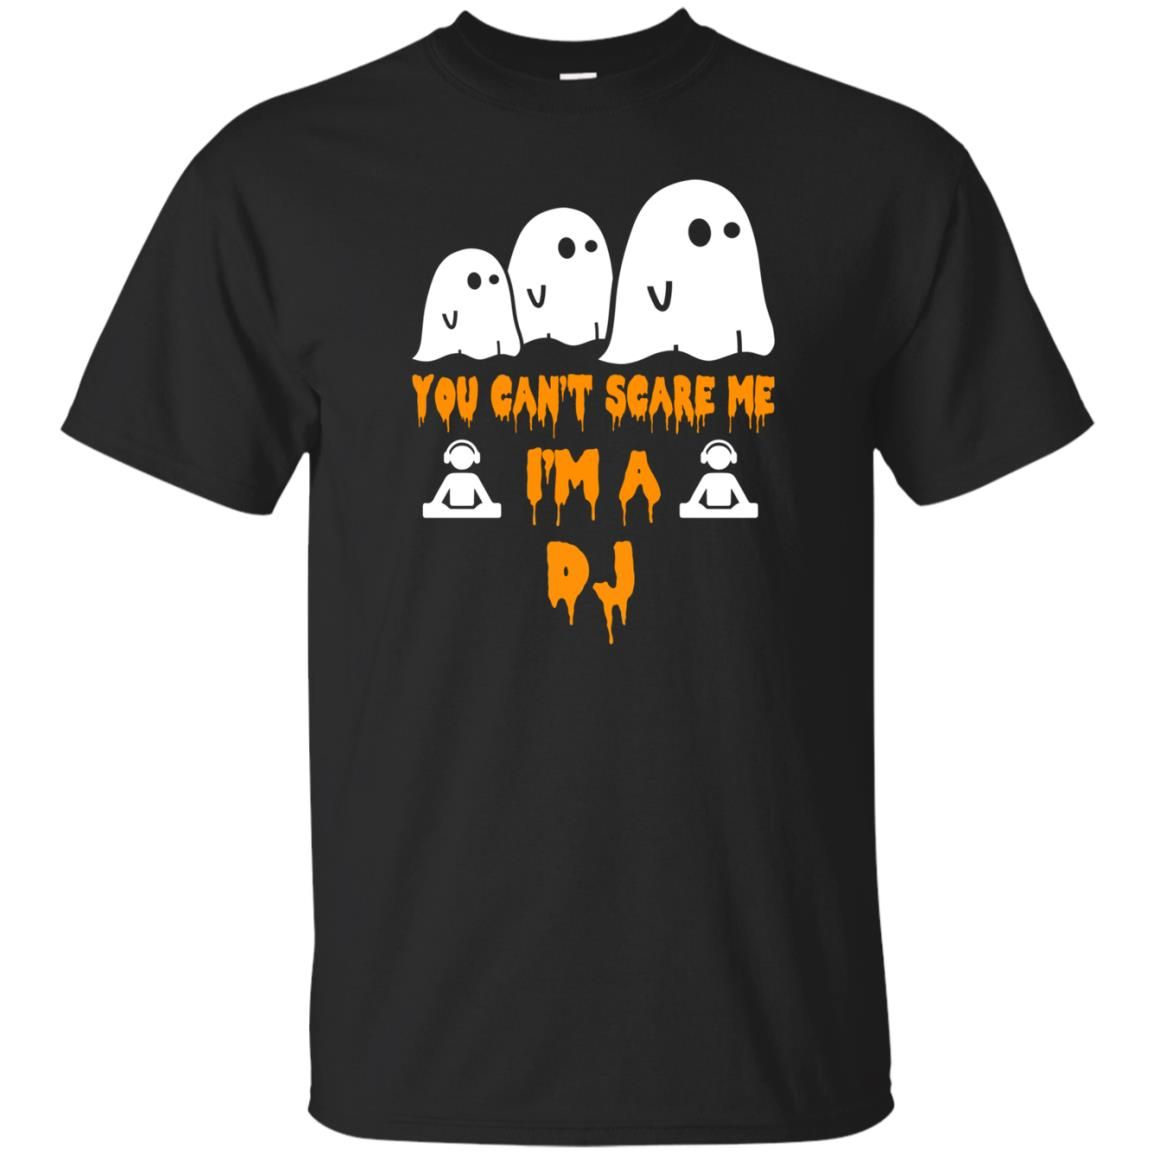 image 449 - You can't scare me I'm a DJ shirt, hoodie, tank